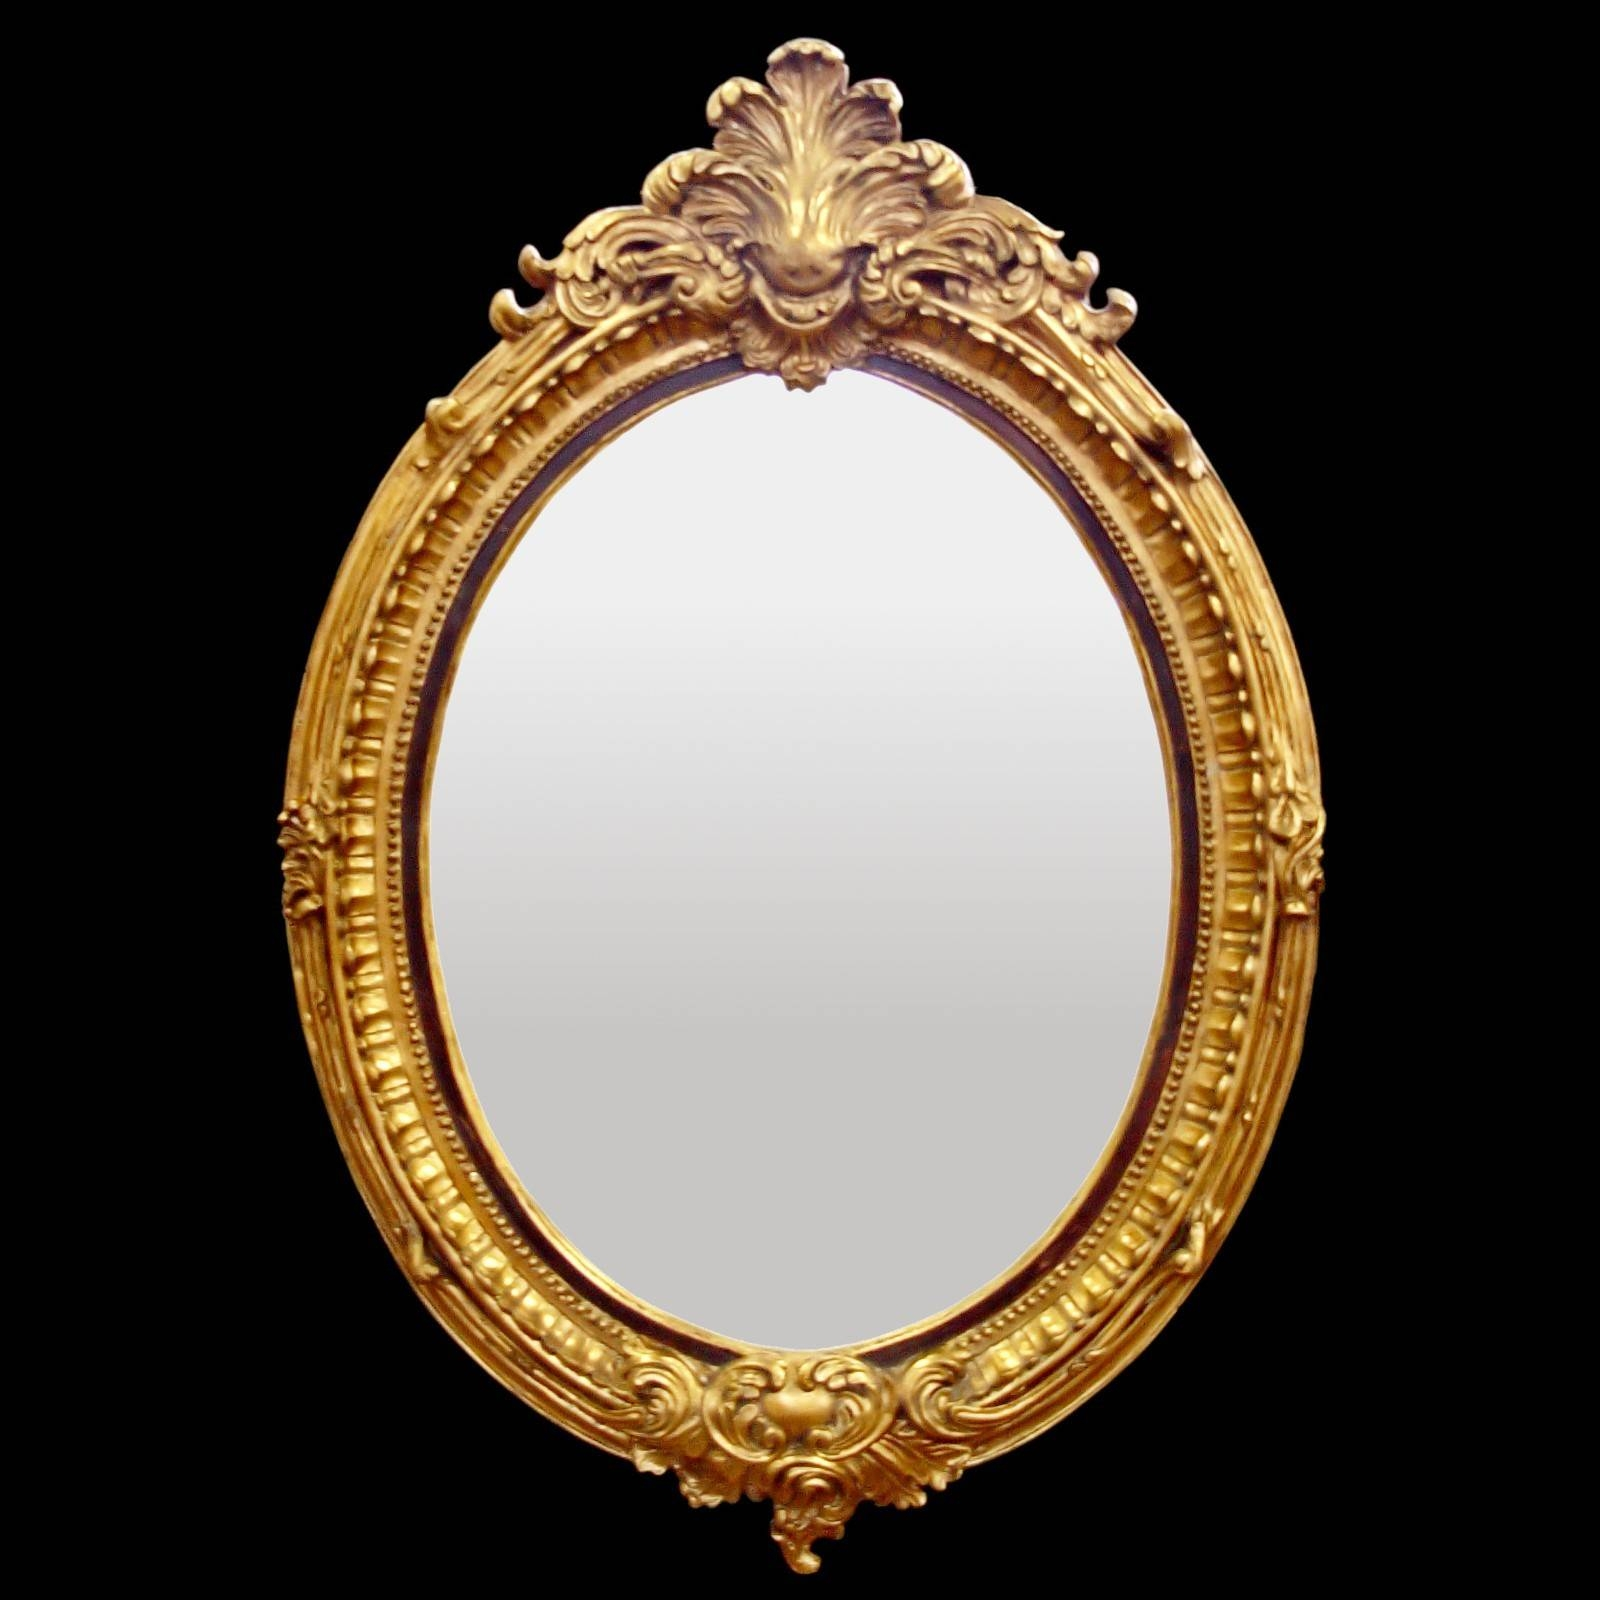 Baroque Hall Mirror Oval Wall Mirror Gold Color Red Leaf Motif Within Baroque Wall Mirrors (View 1 of 15)